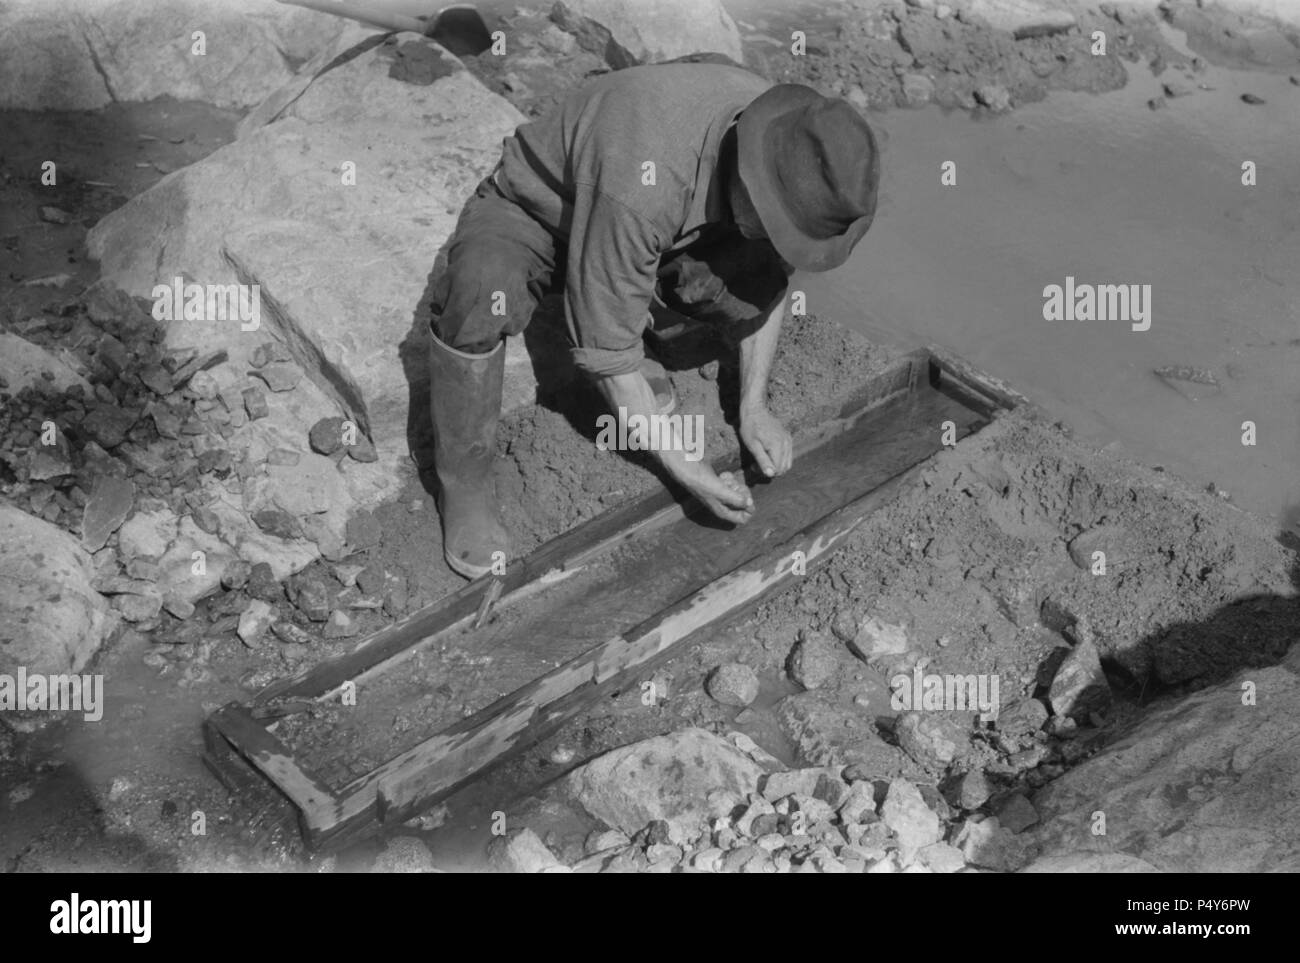 Gold Prospector By Sluice Stock Photos & Gold Prospector By